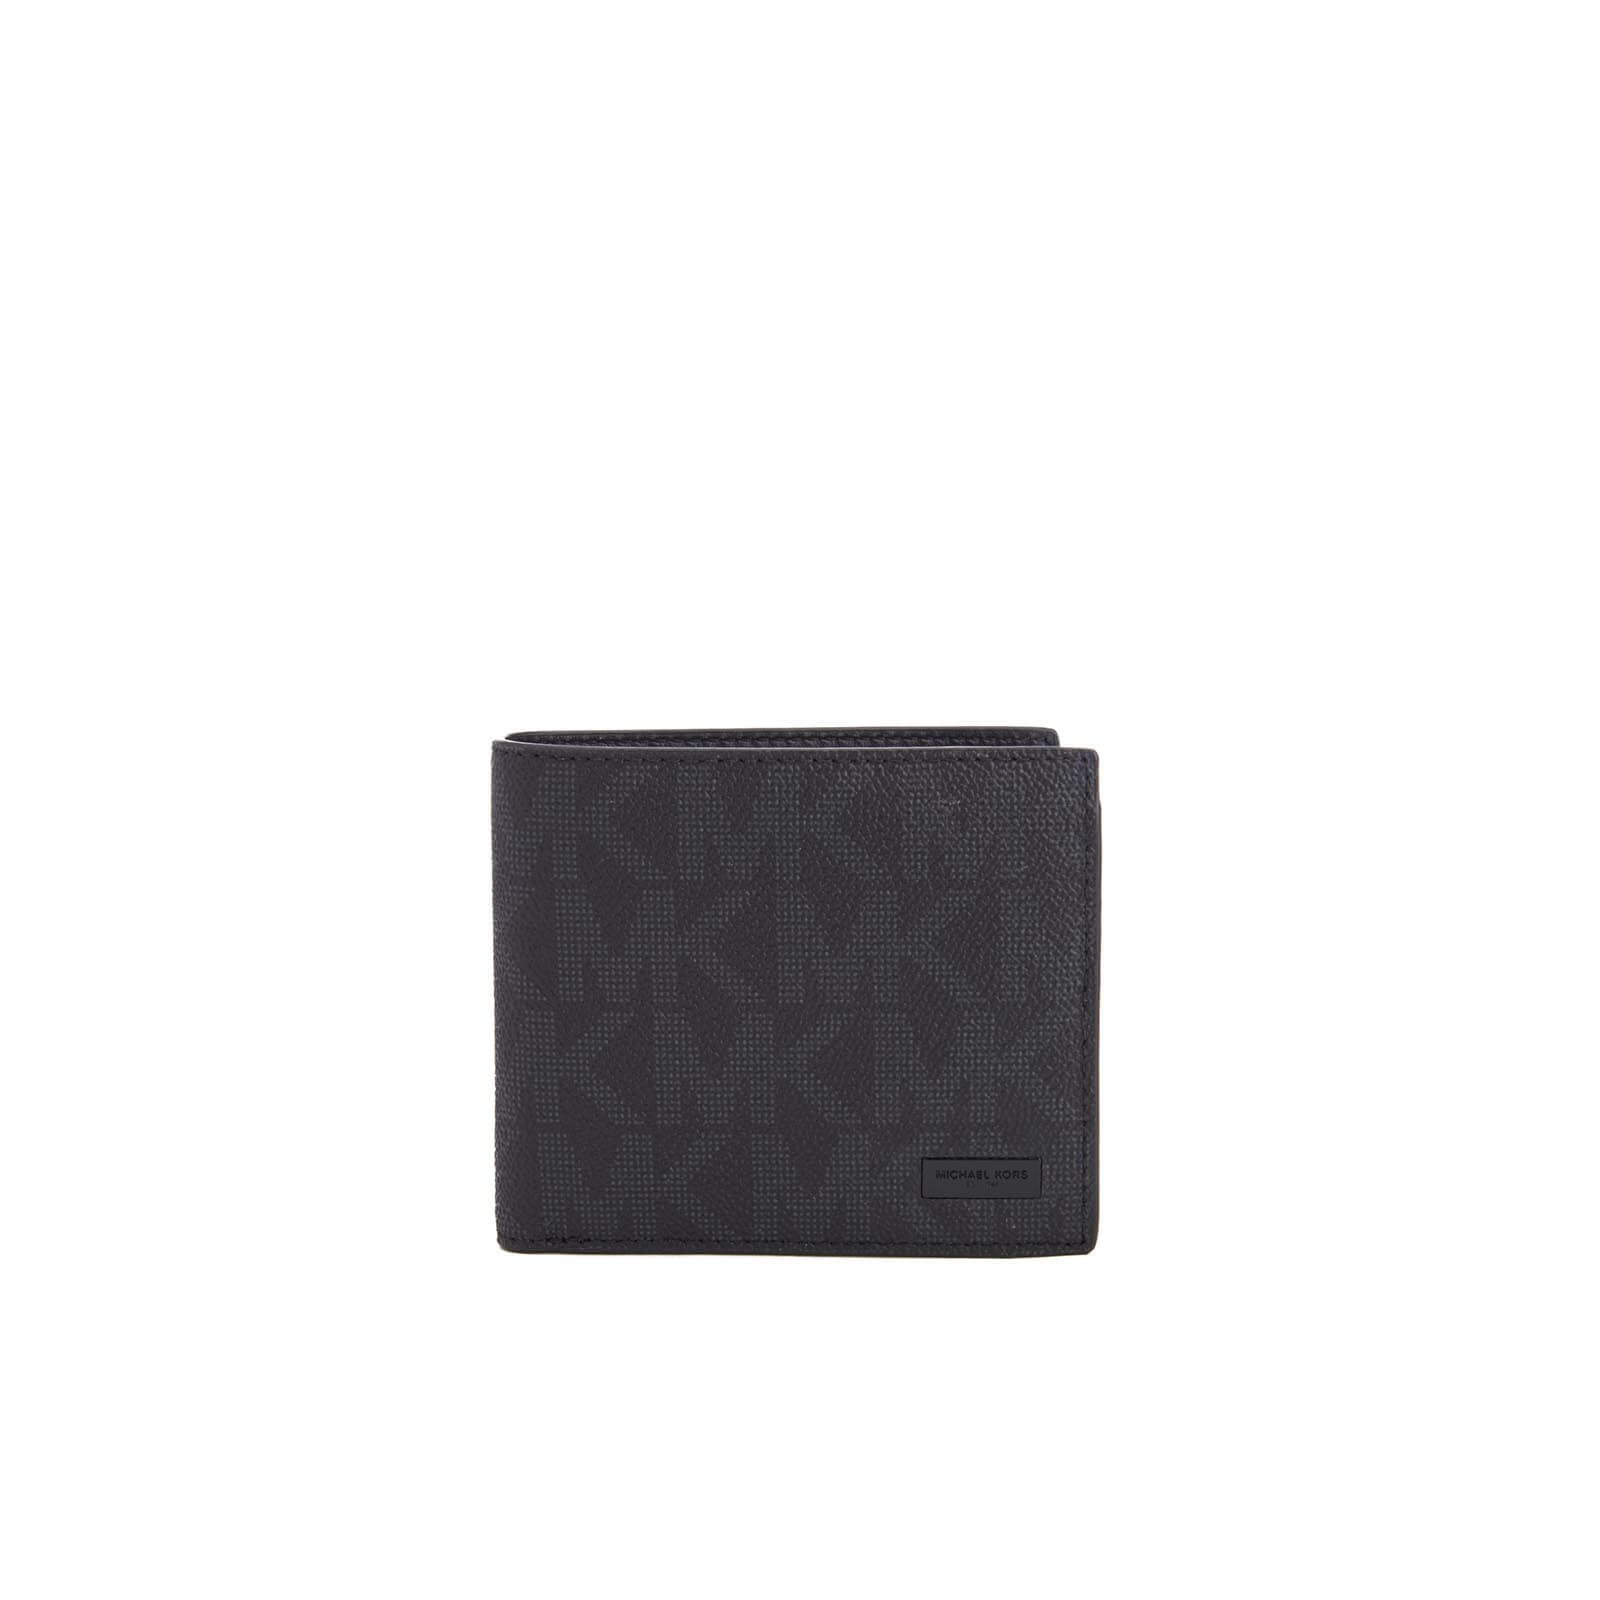 a2a5bc92b2b7 Michael Kors Men's Jet Set Billfold Wallet with Coin Pocket - Black Mens  Accessories | TheHut.com